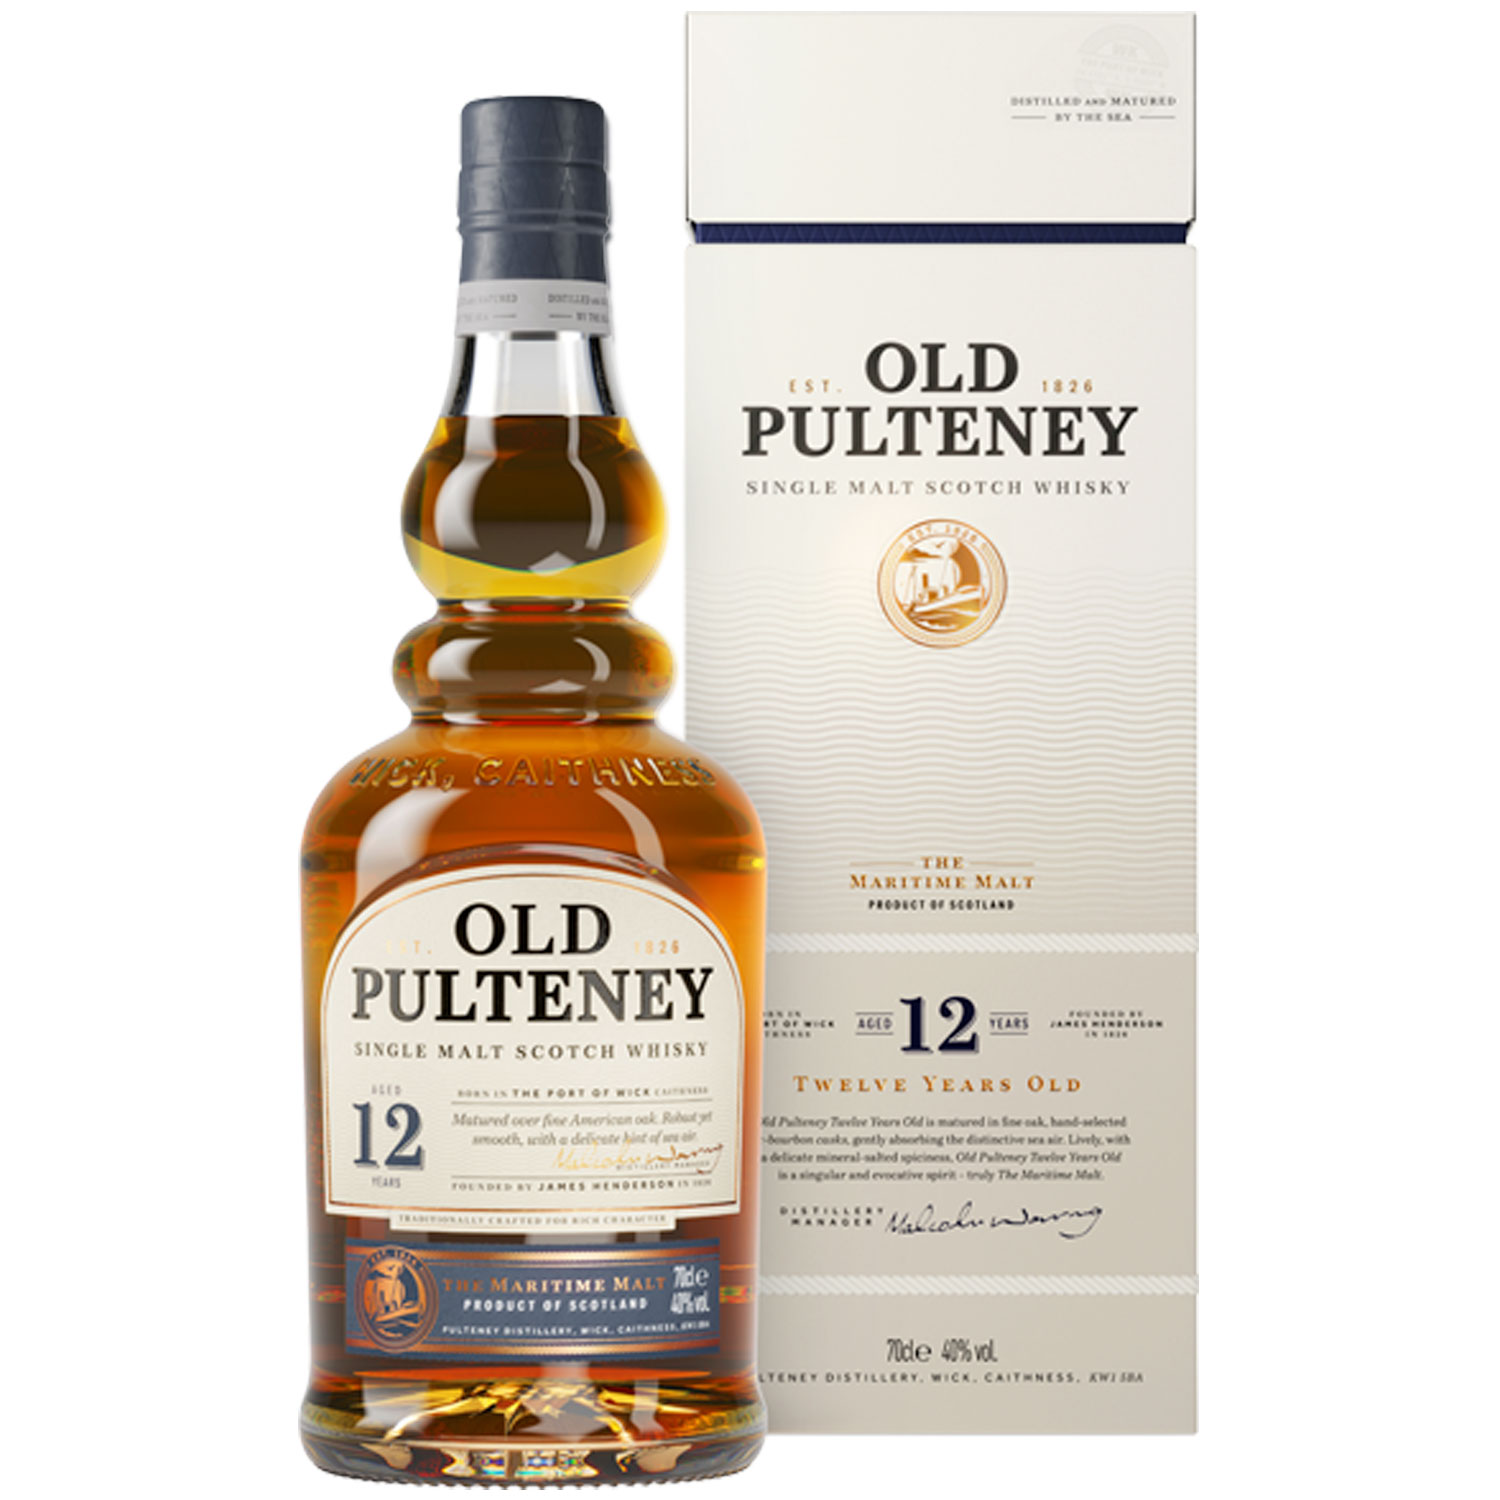 Whisky - Old Pulteney 12 ans - Single Malt - 70cl - 46°